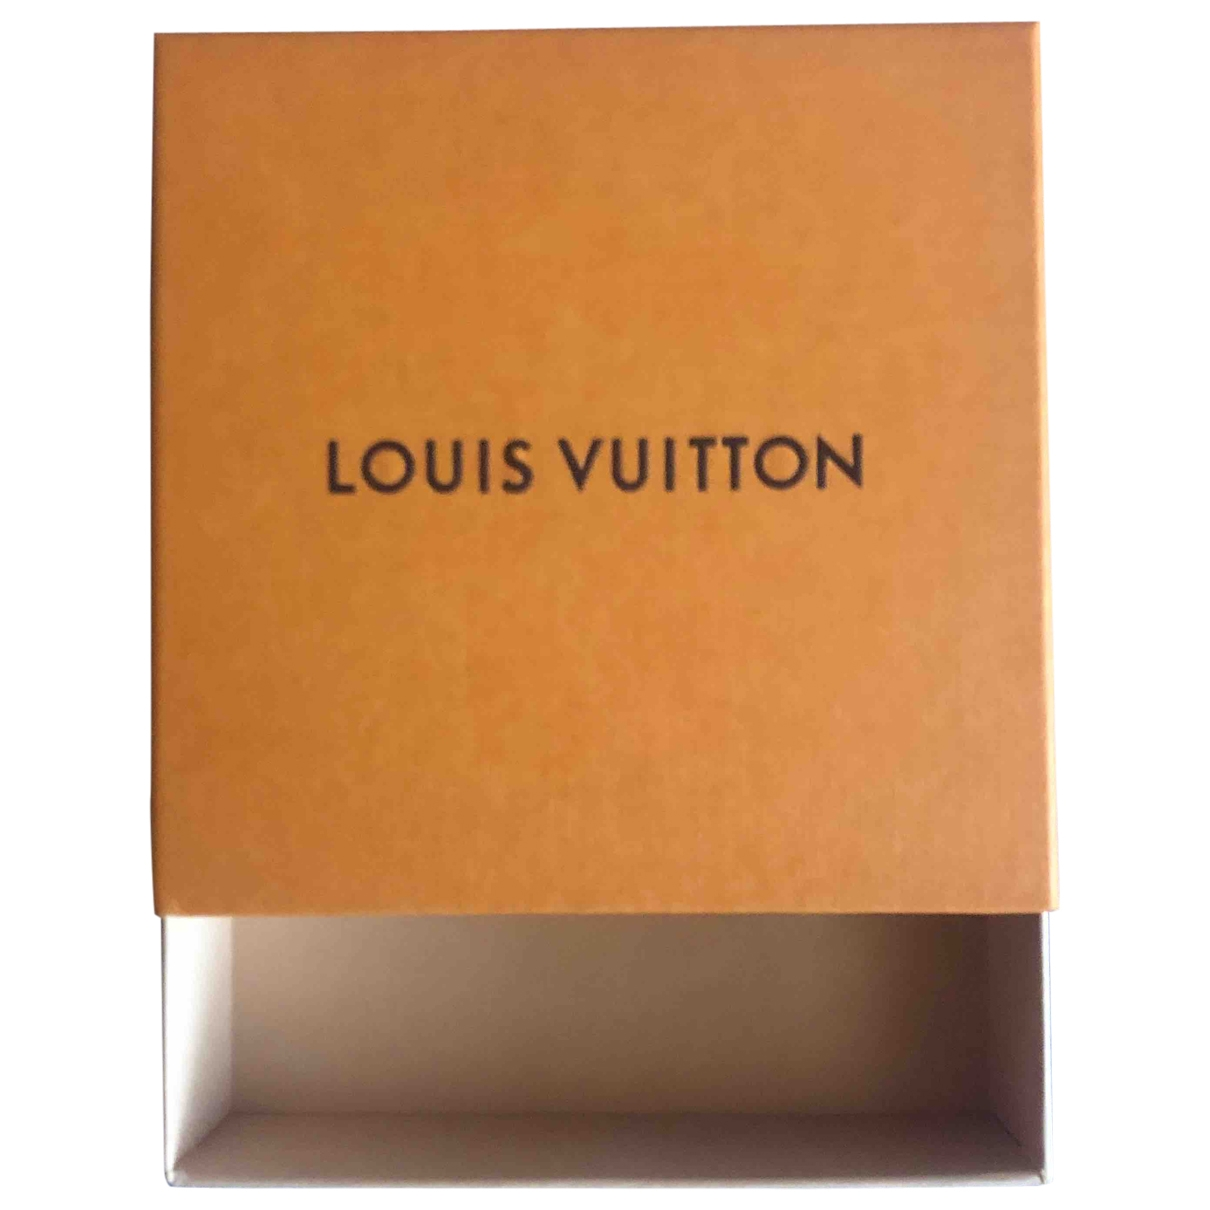 Objeto de decoracion Louis Vuitton